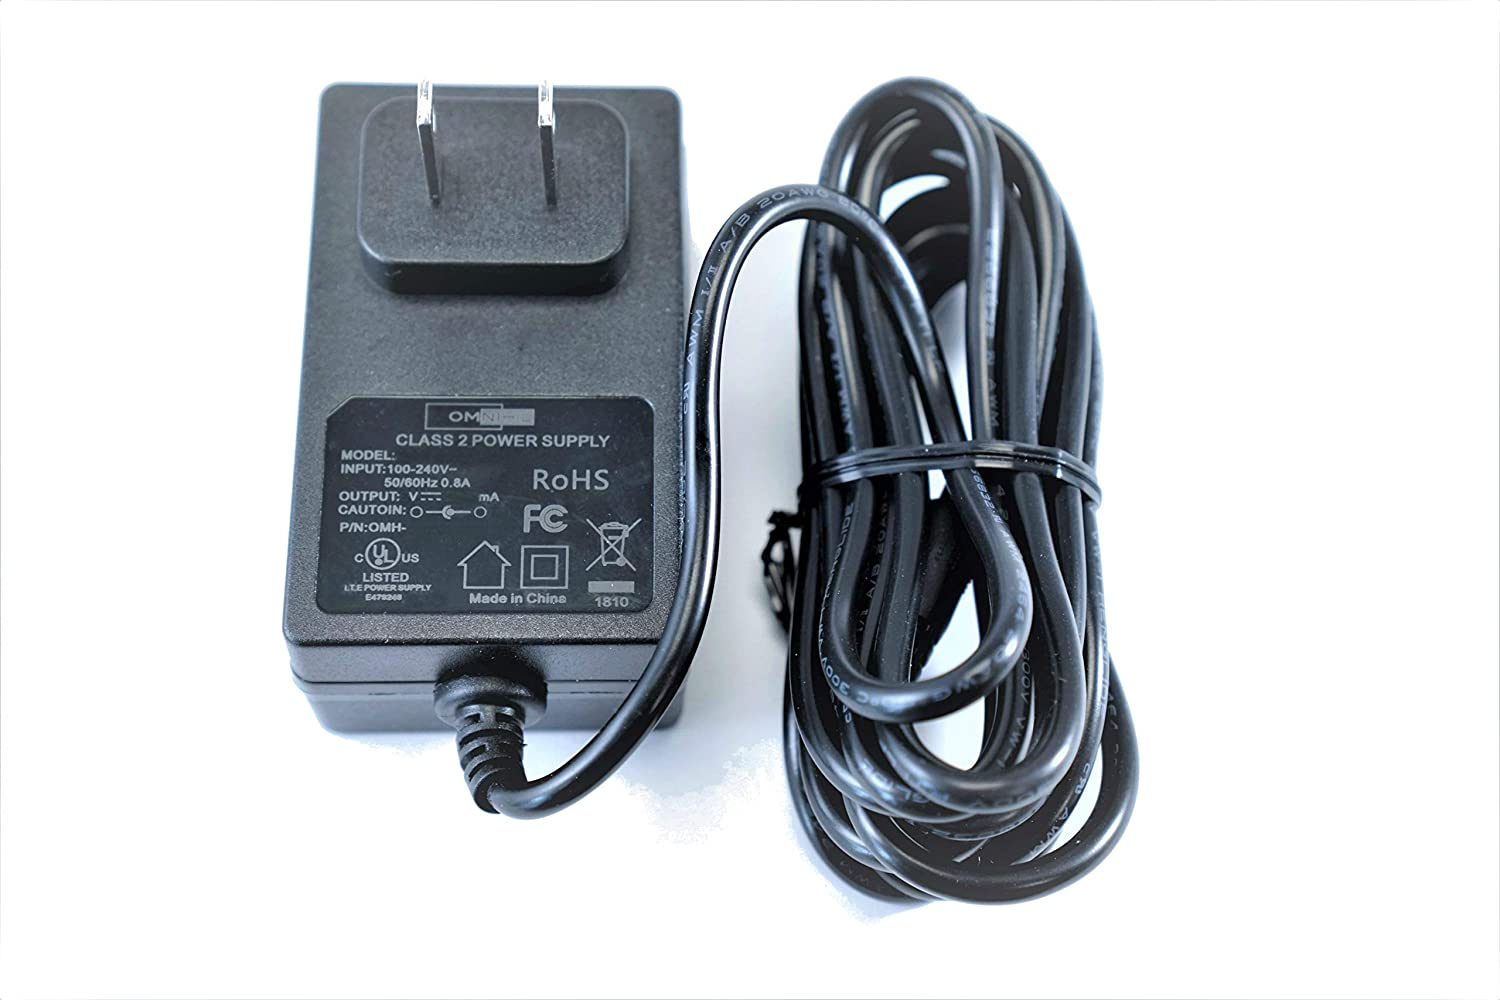 [UL Listed] OMNIHIL 8 Feet Long AC/DC Adapter Compatible with Asus Eee PC MK90 Power Supply Charger